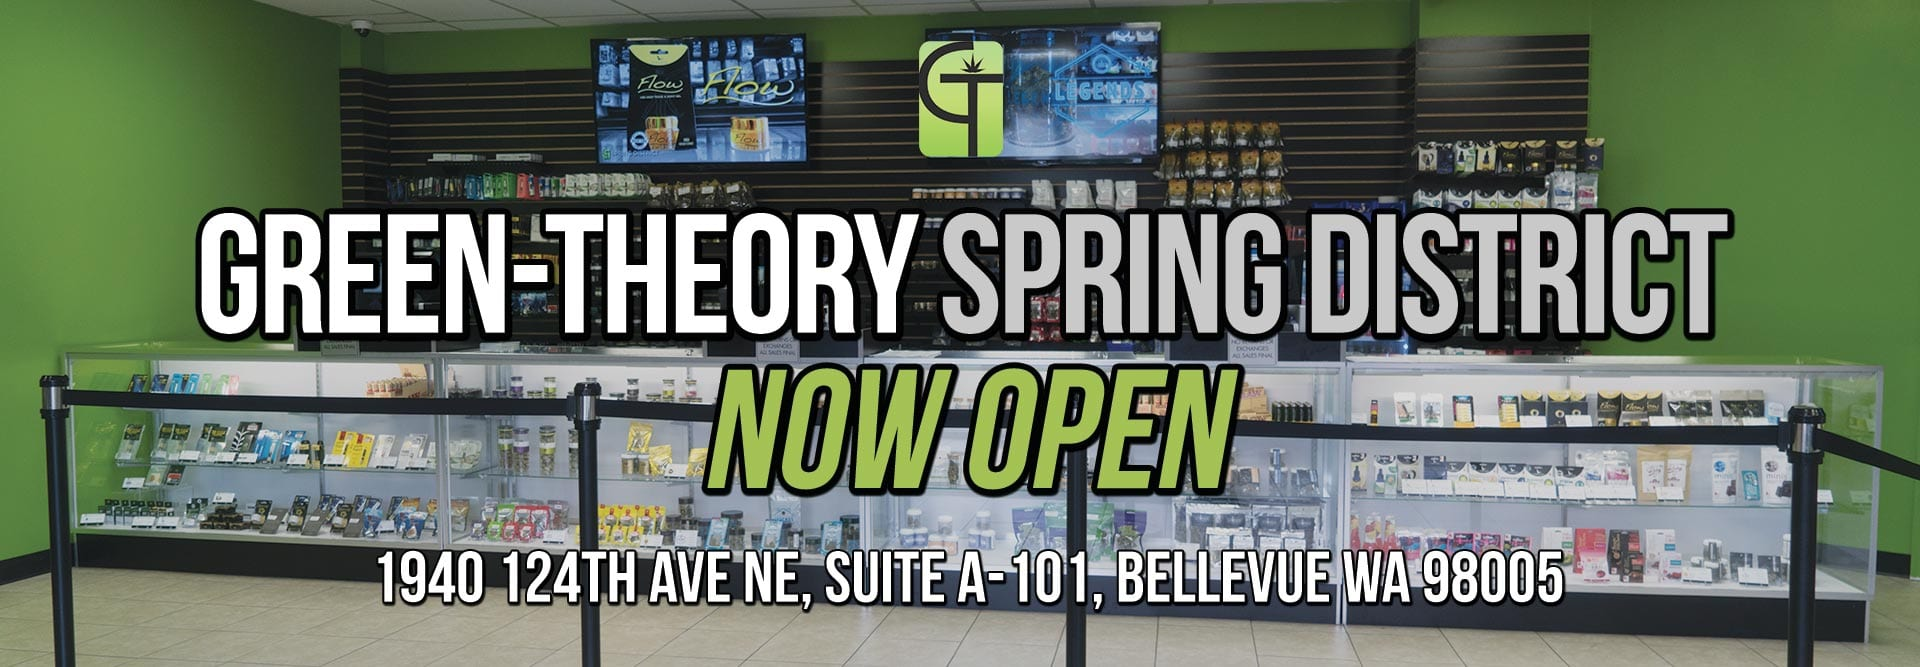 spring-district-green-theory-now-open